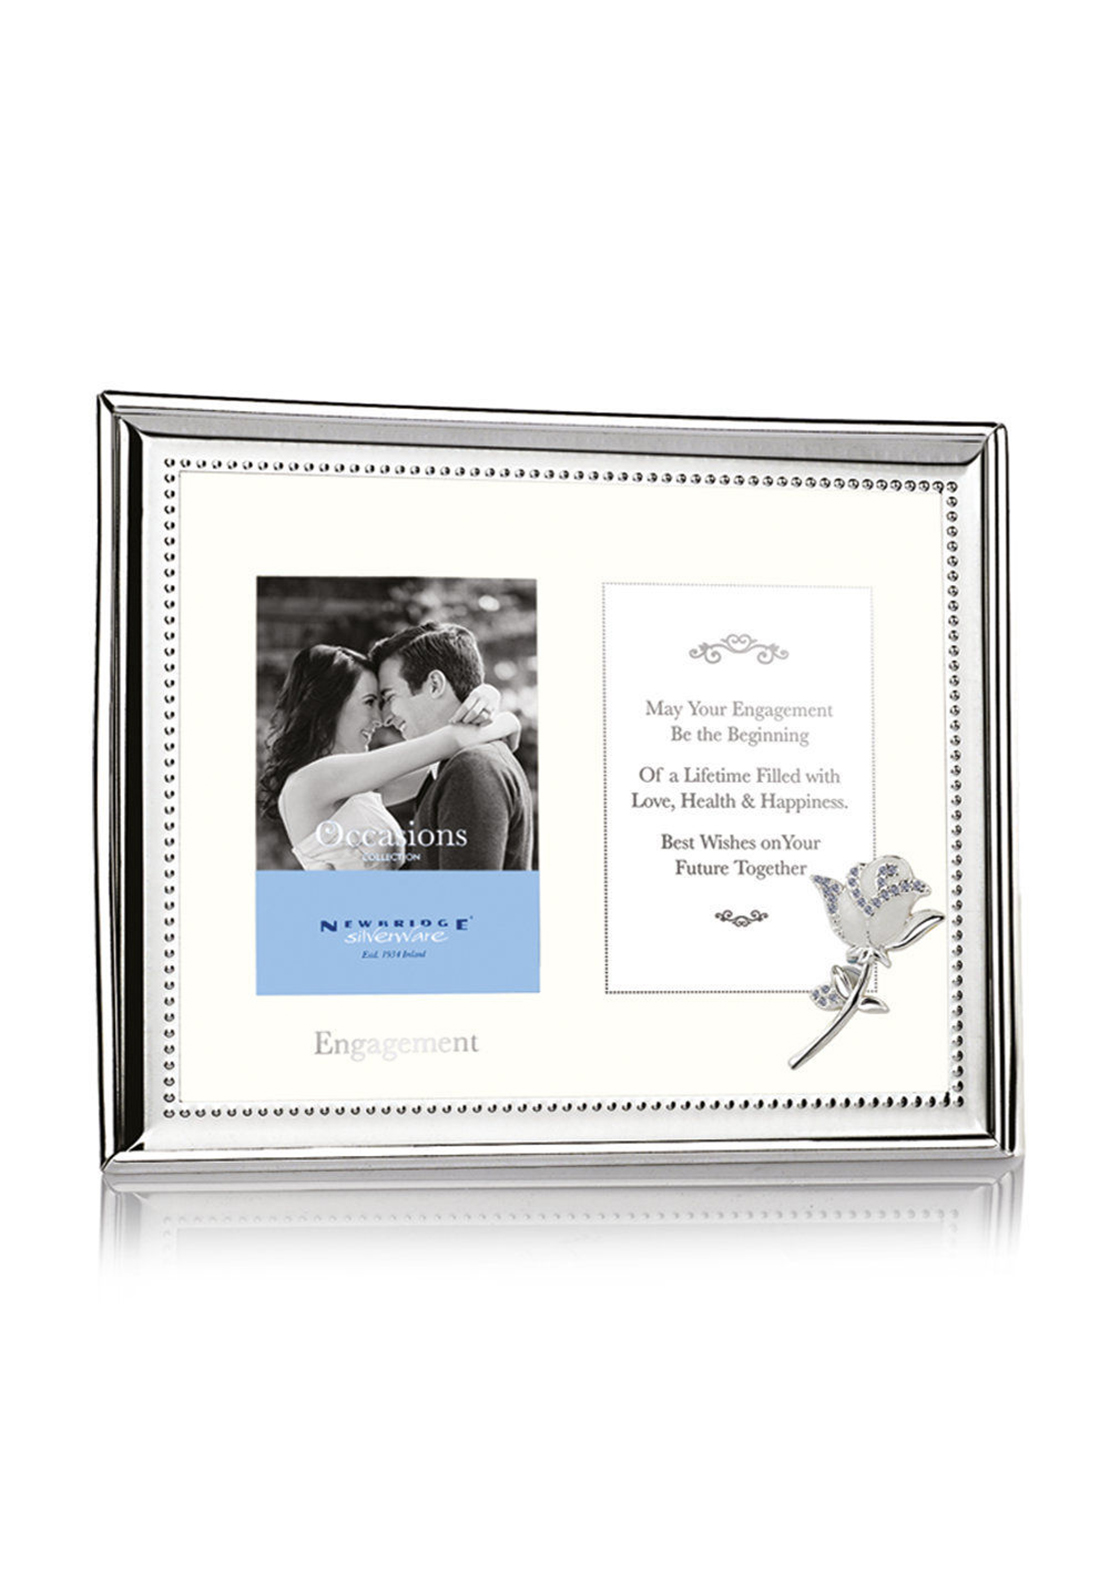 Newbridge Engagement Double Frame, 3 x 4 inches